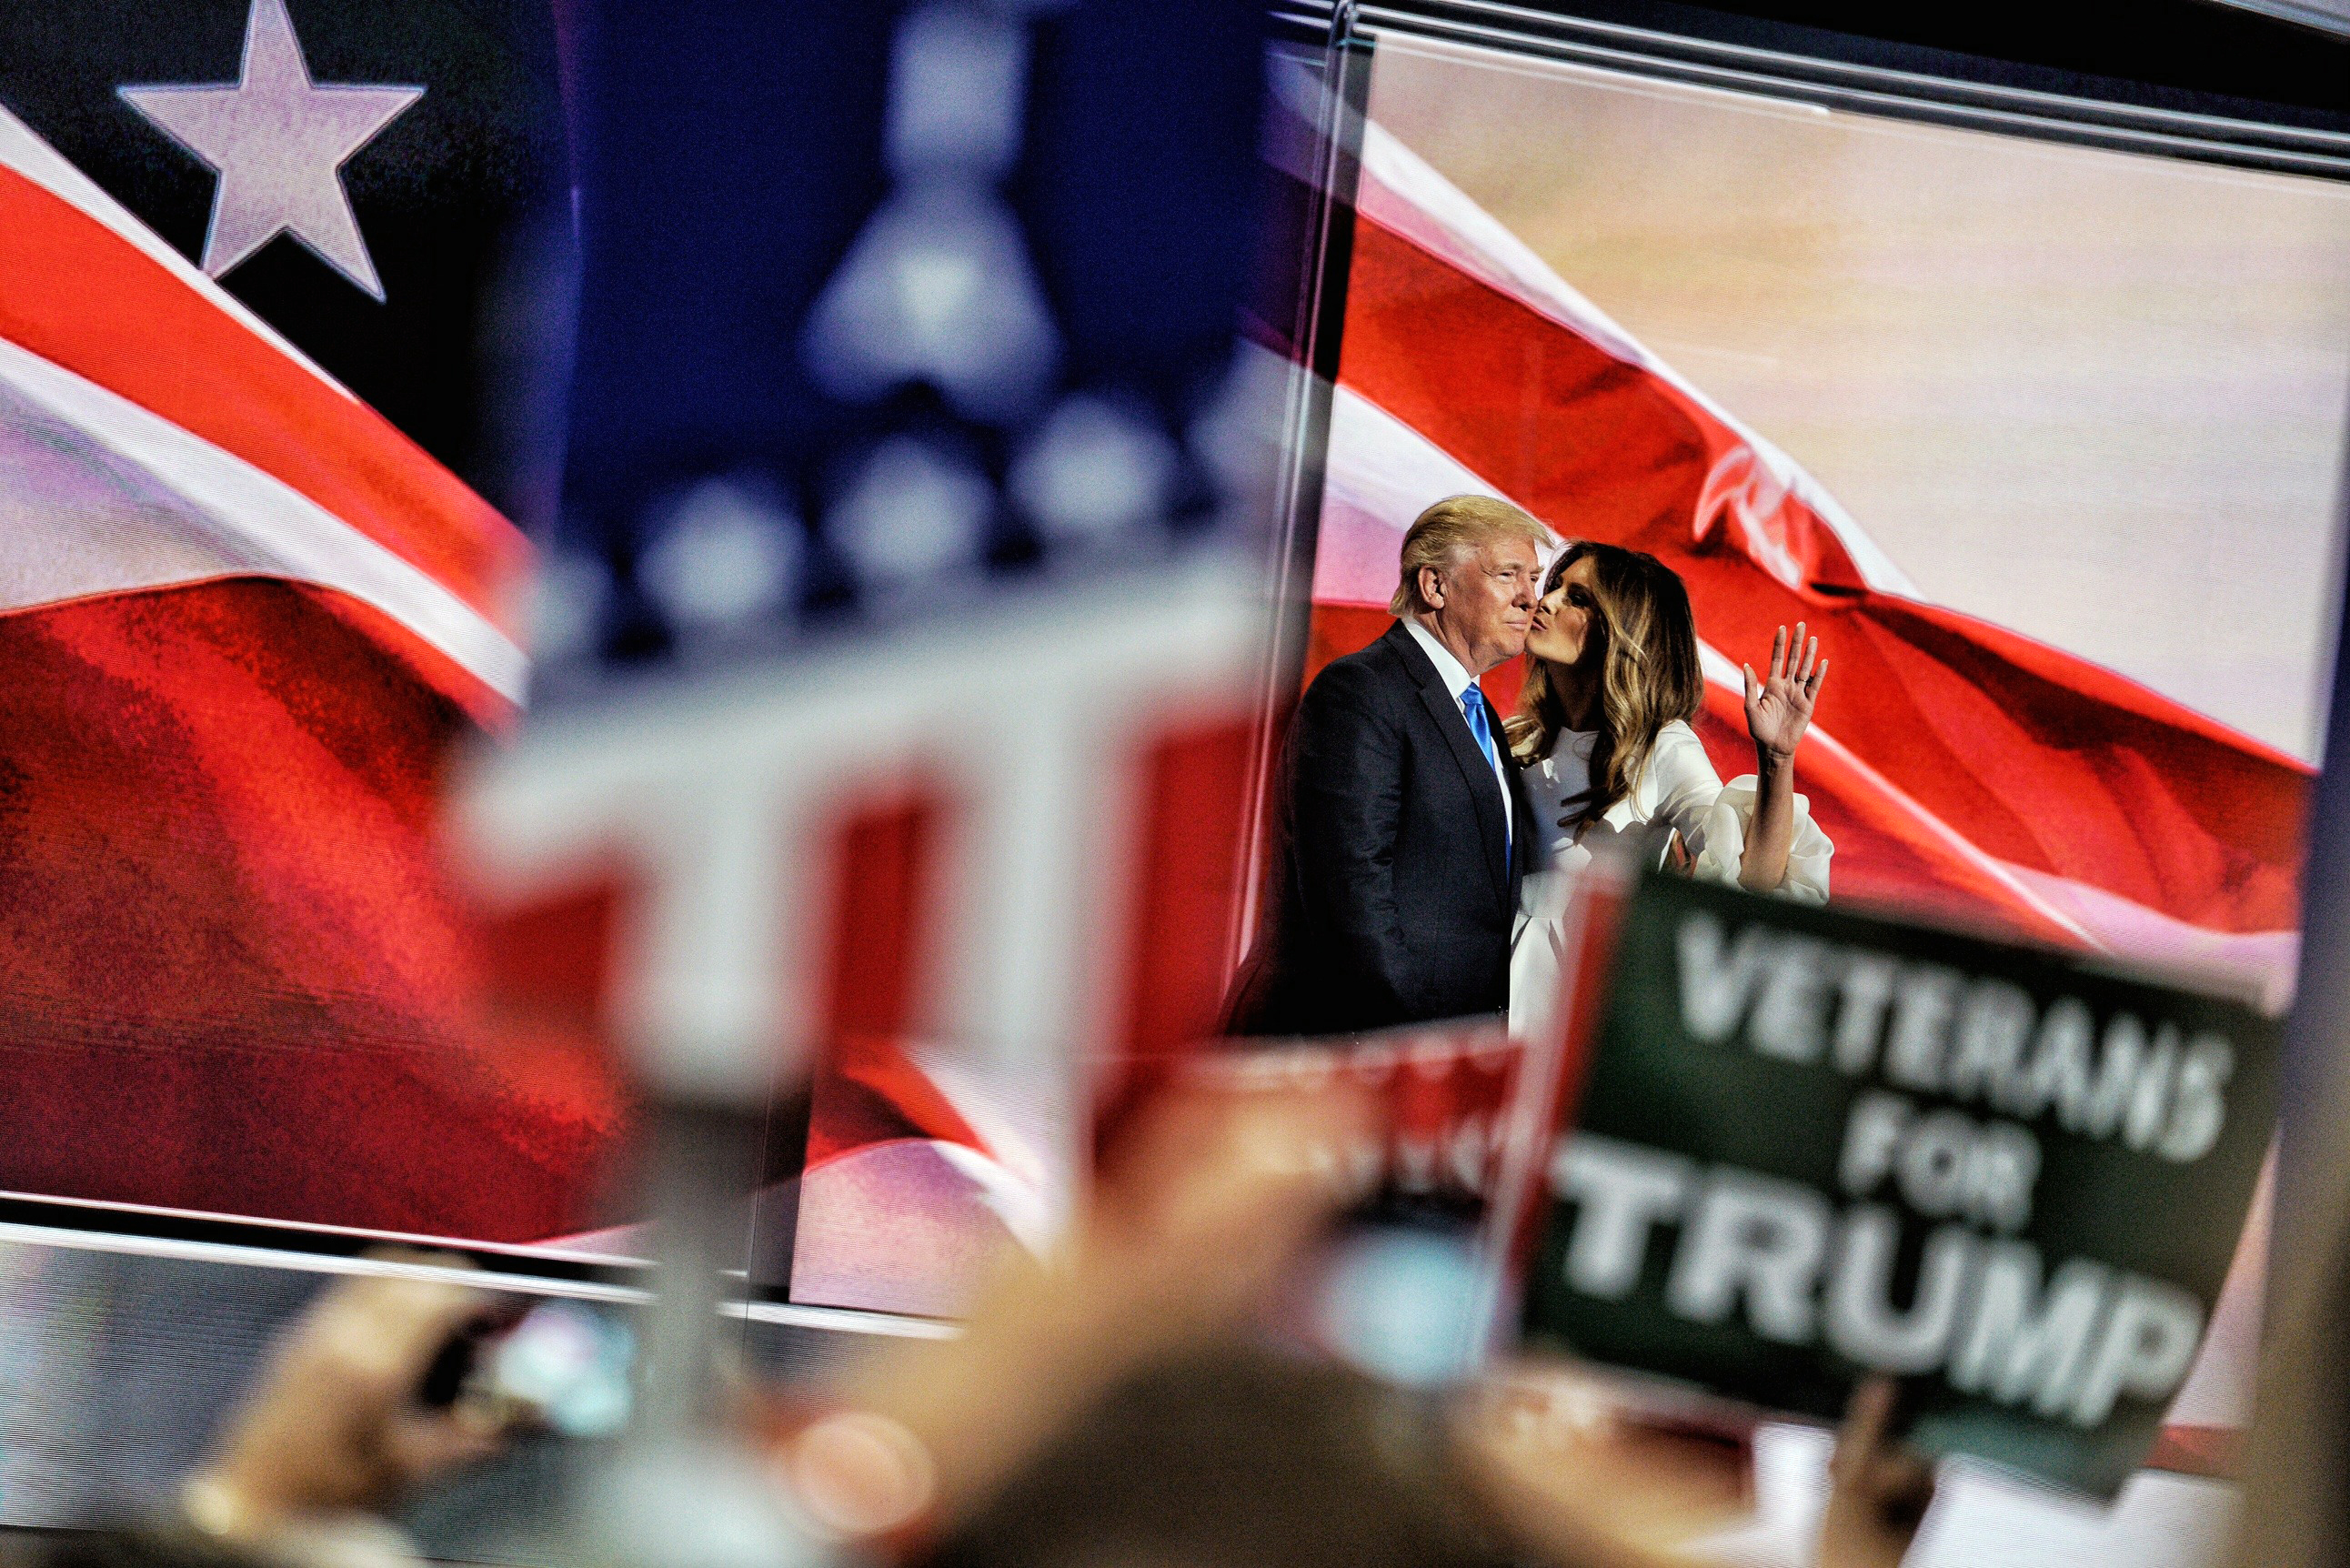 Melania Trump kisses her husband, Donald Trump in front of an ecstatic crowd, on July 18, 2016.